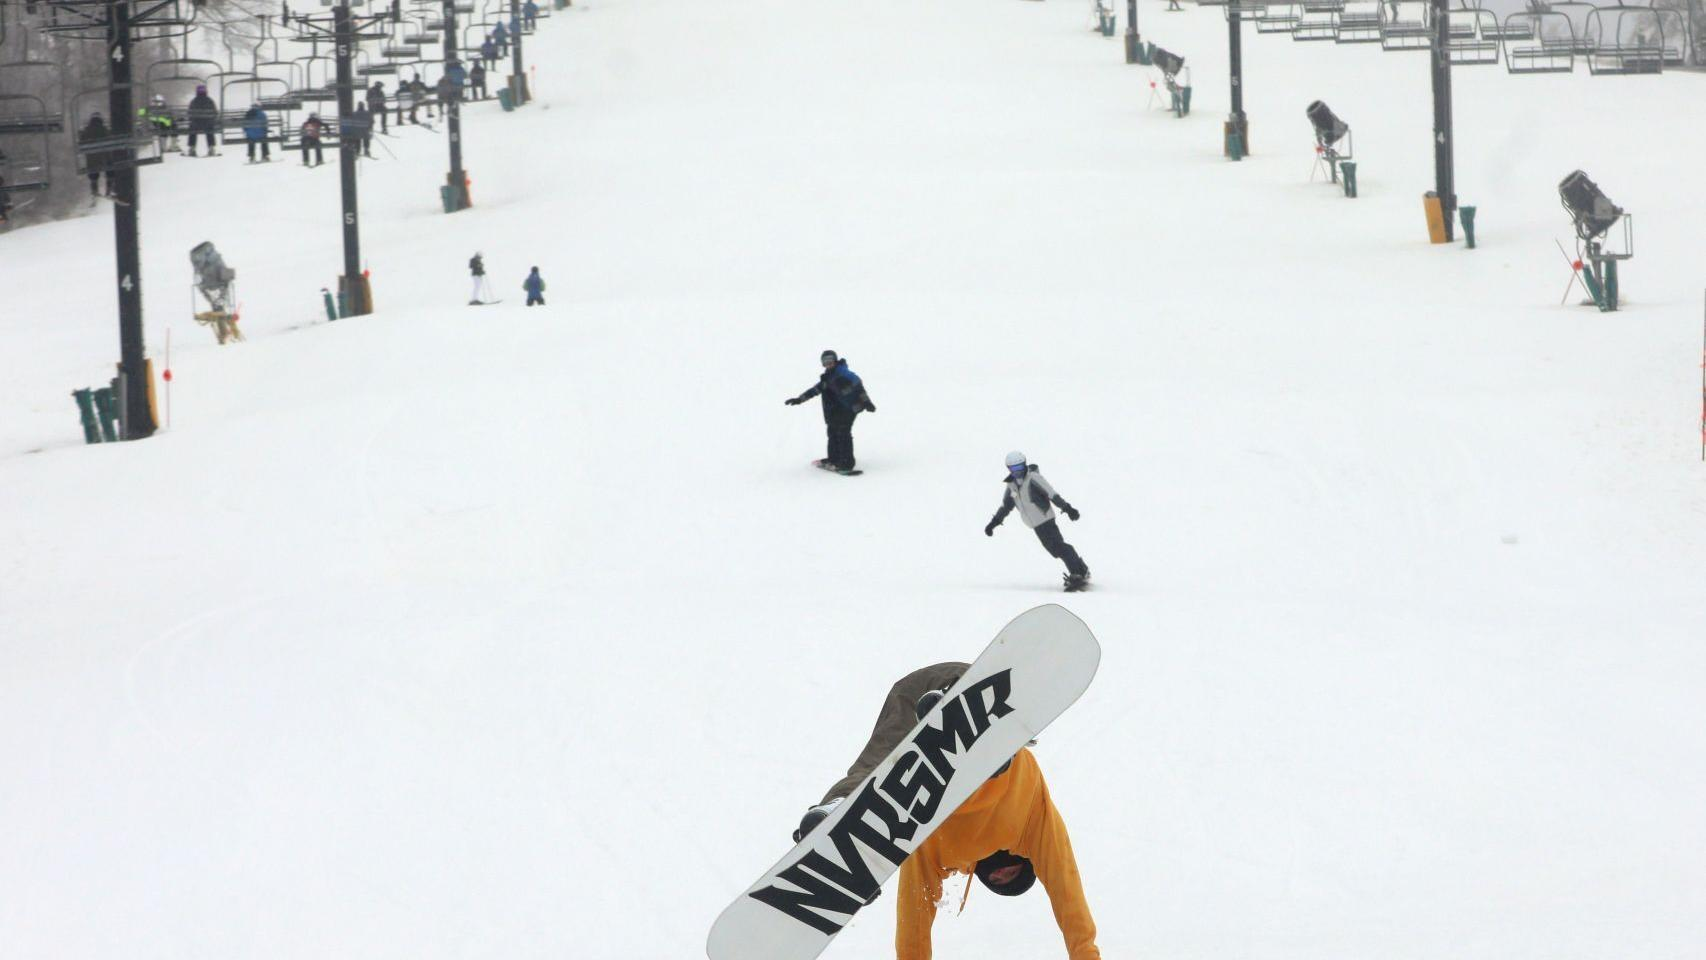 Skiers and snowboarders flock to the slopes on opening day at Hidden Valley Ski Resort